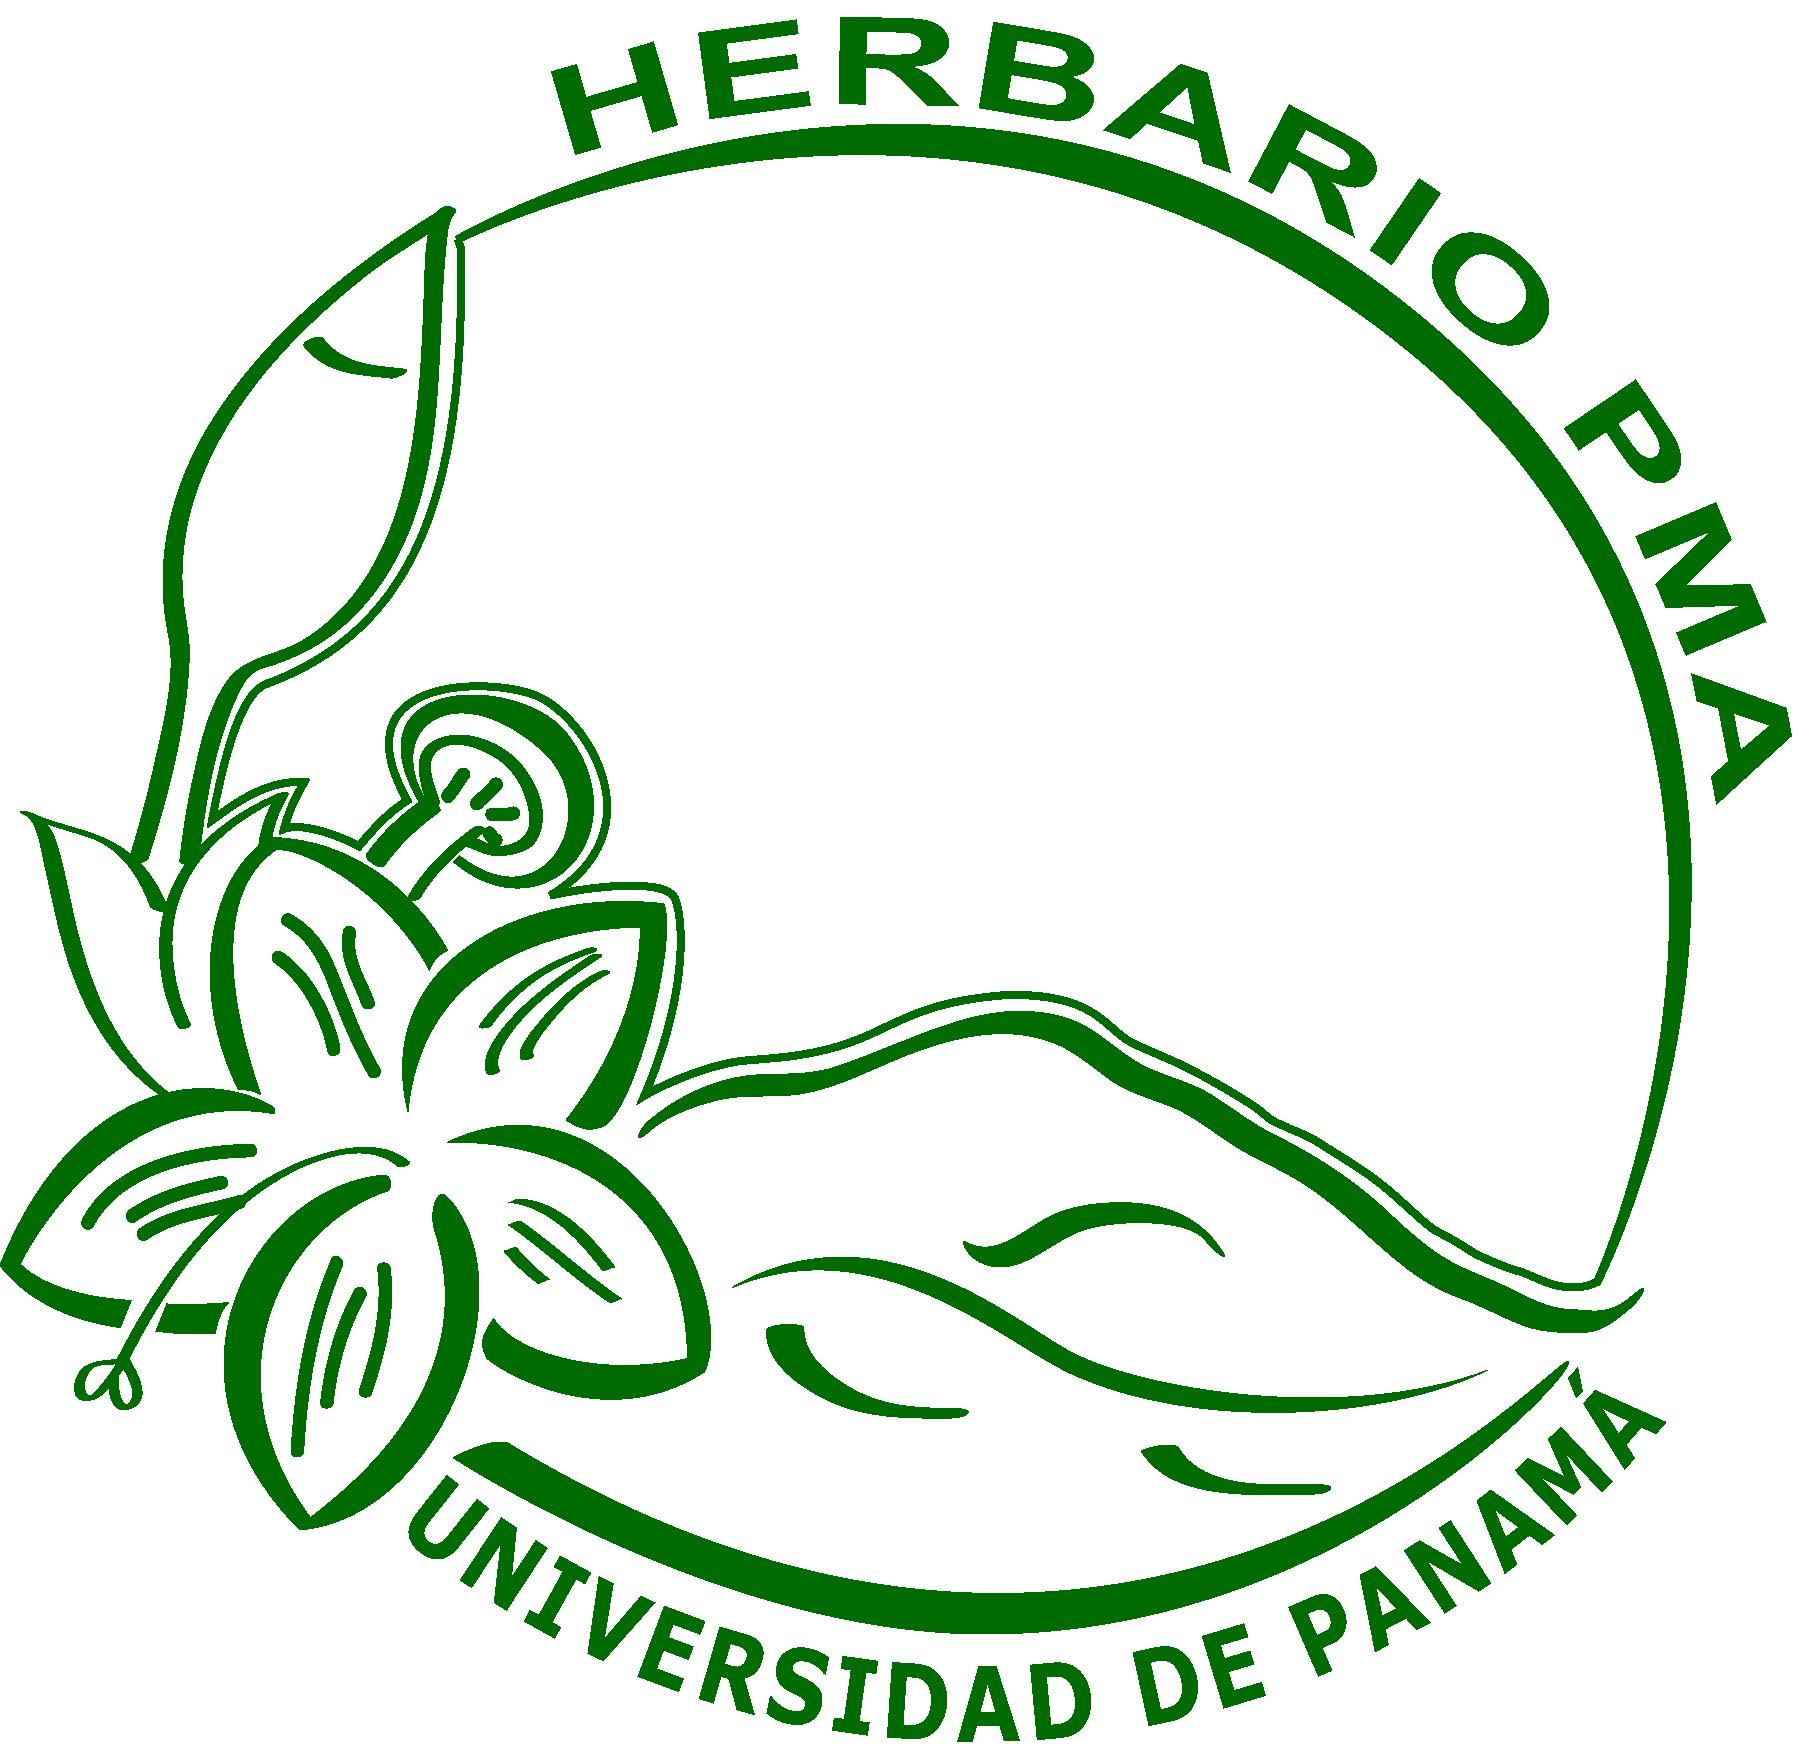 Calendario Universidad De Panama 2018.Inicio Universidad De Panama